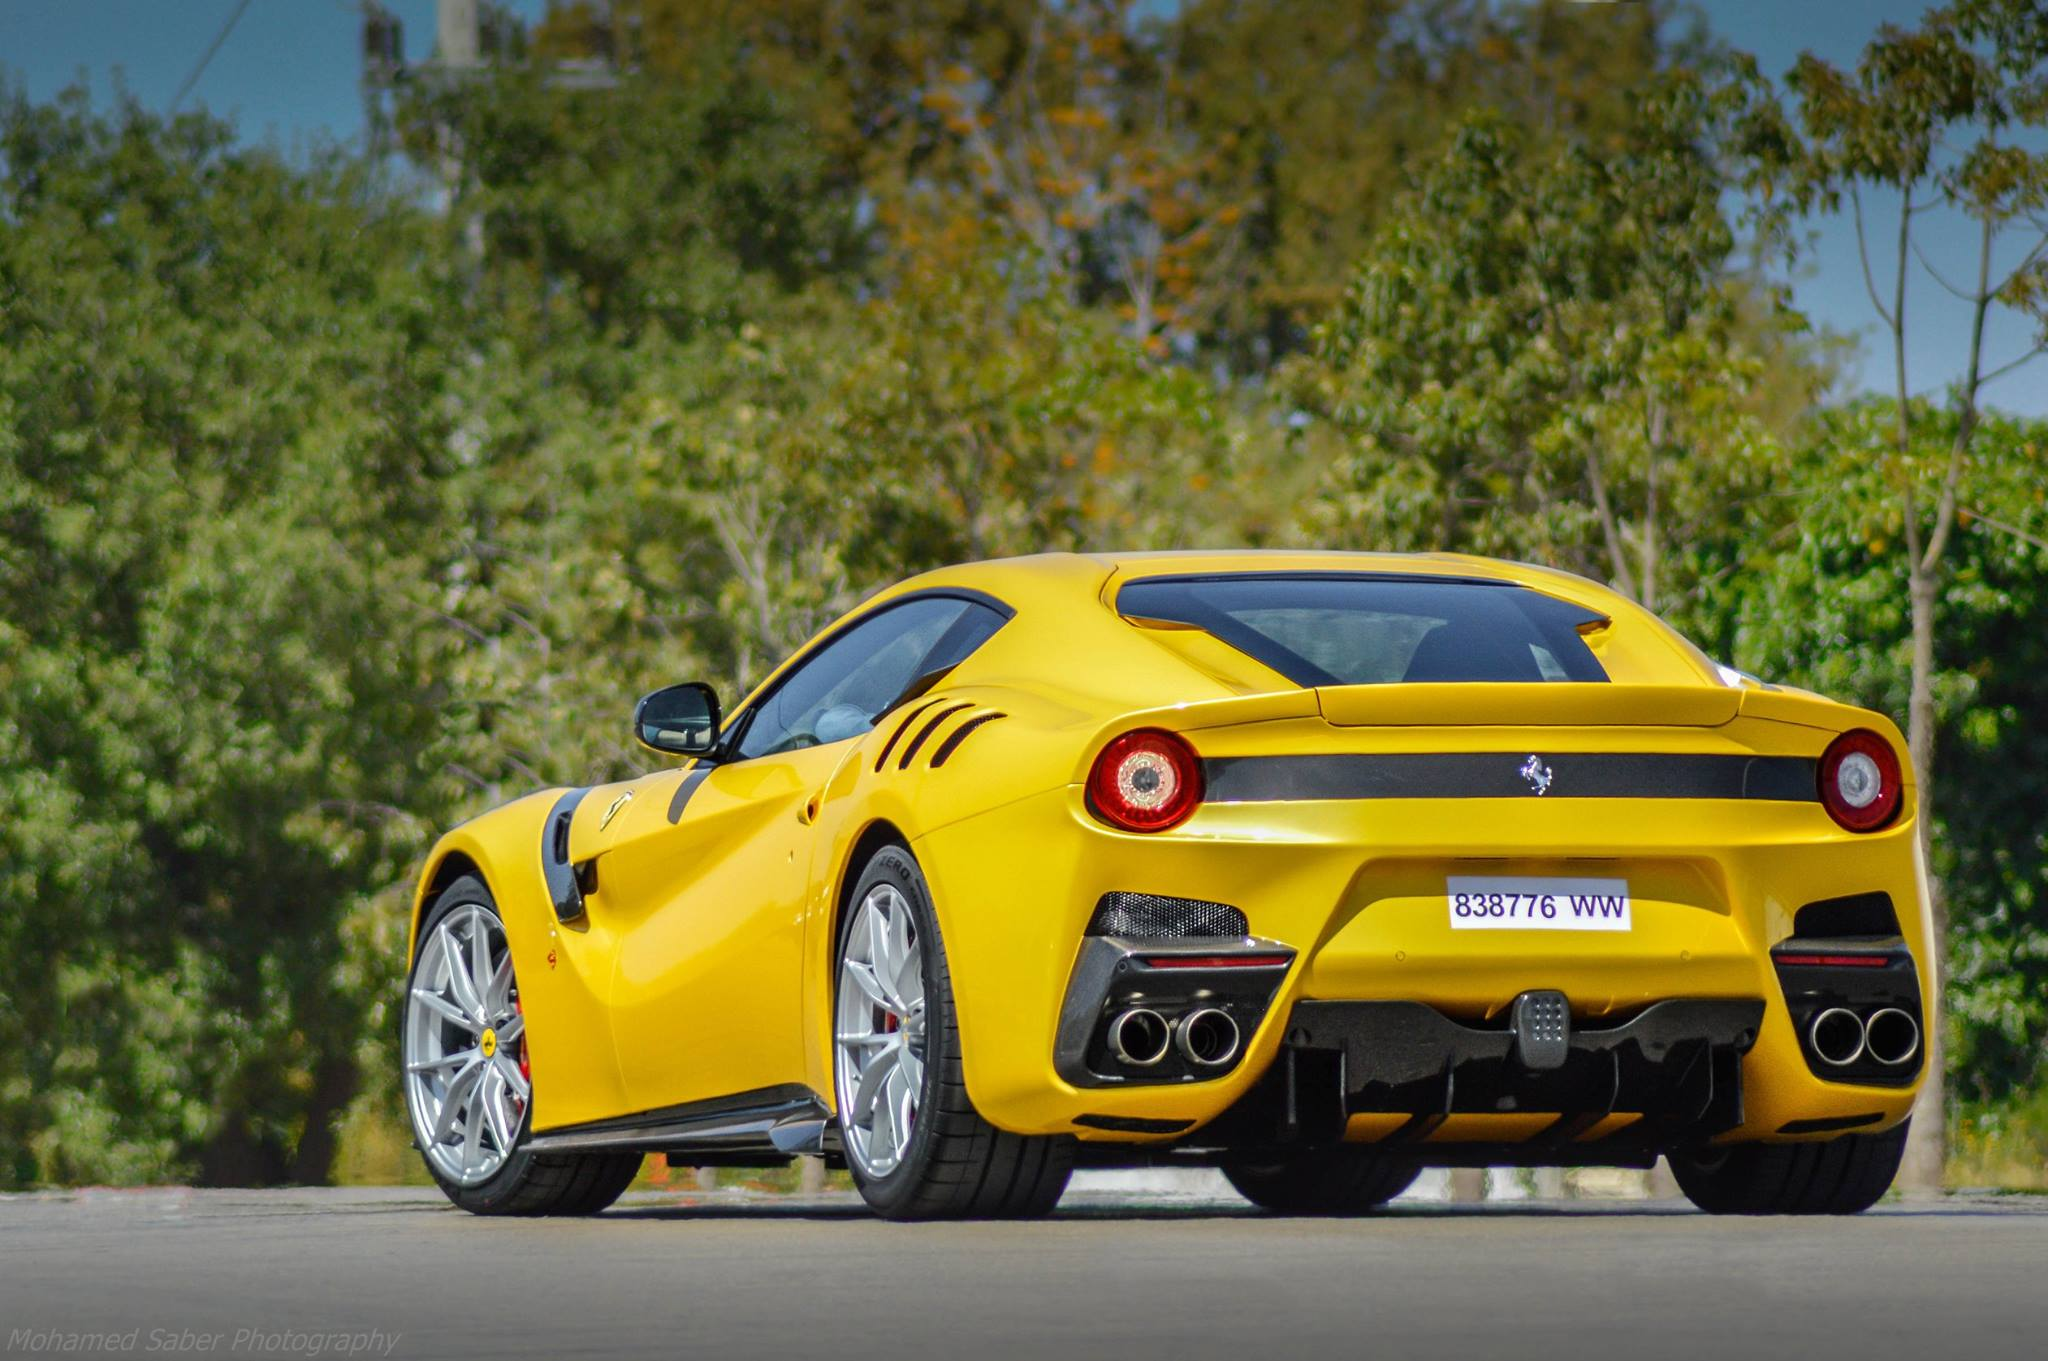 Morocco Receives Its First Ferrari F12tdf Gtspirit